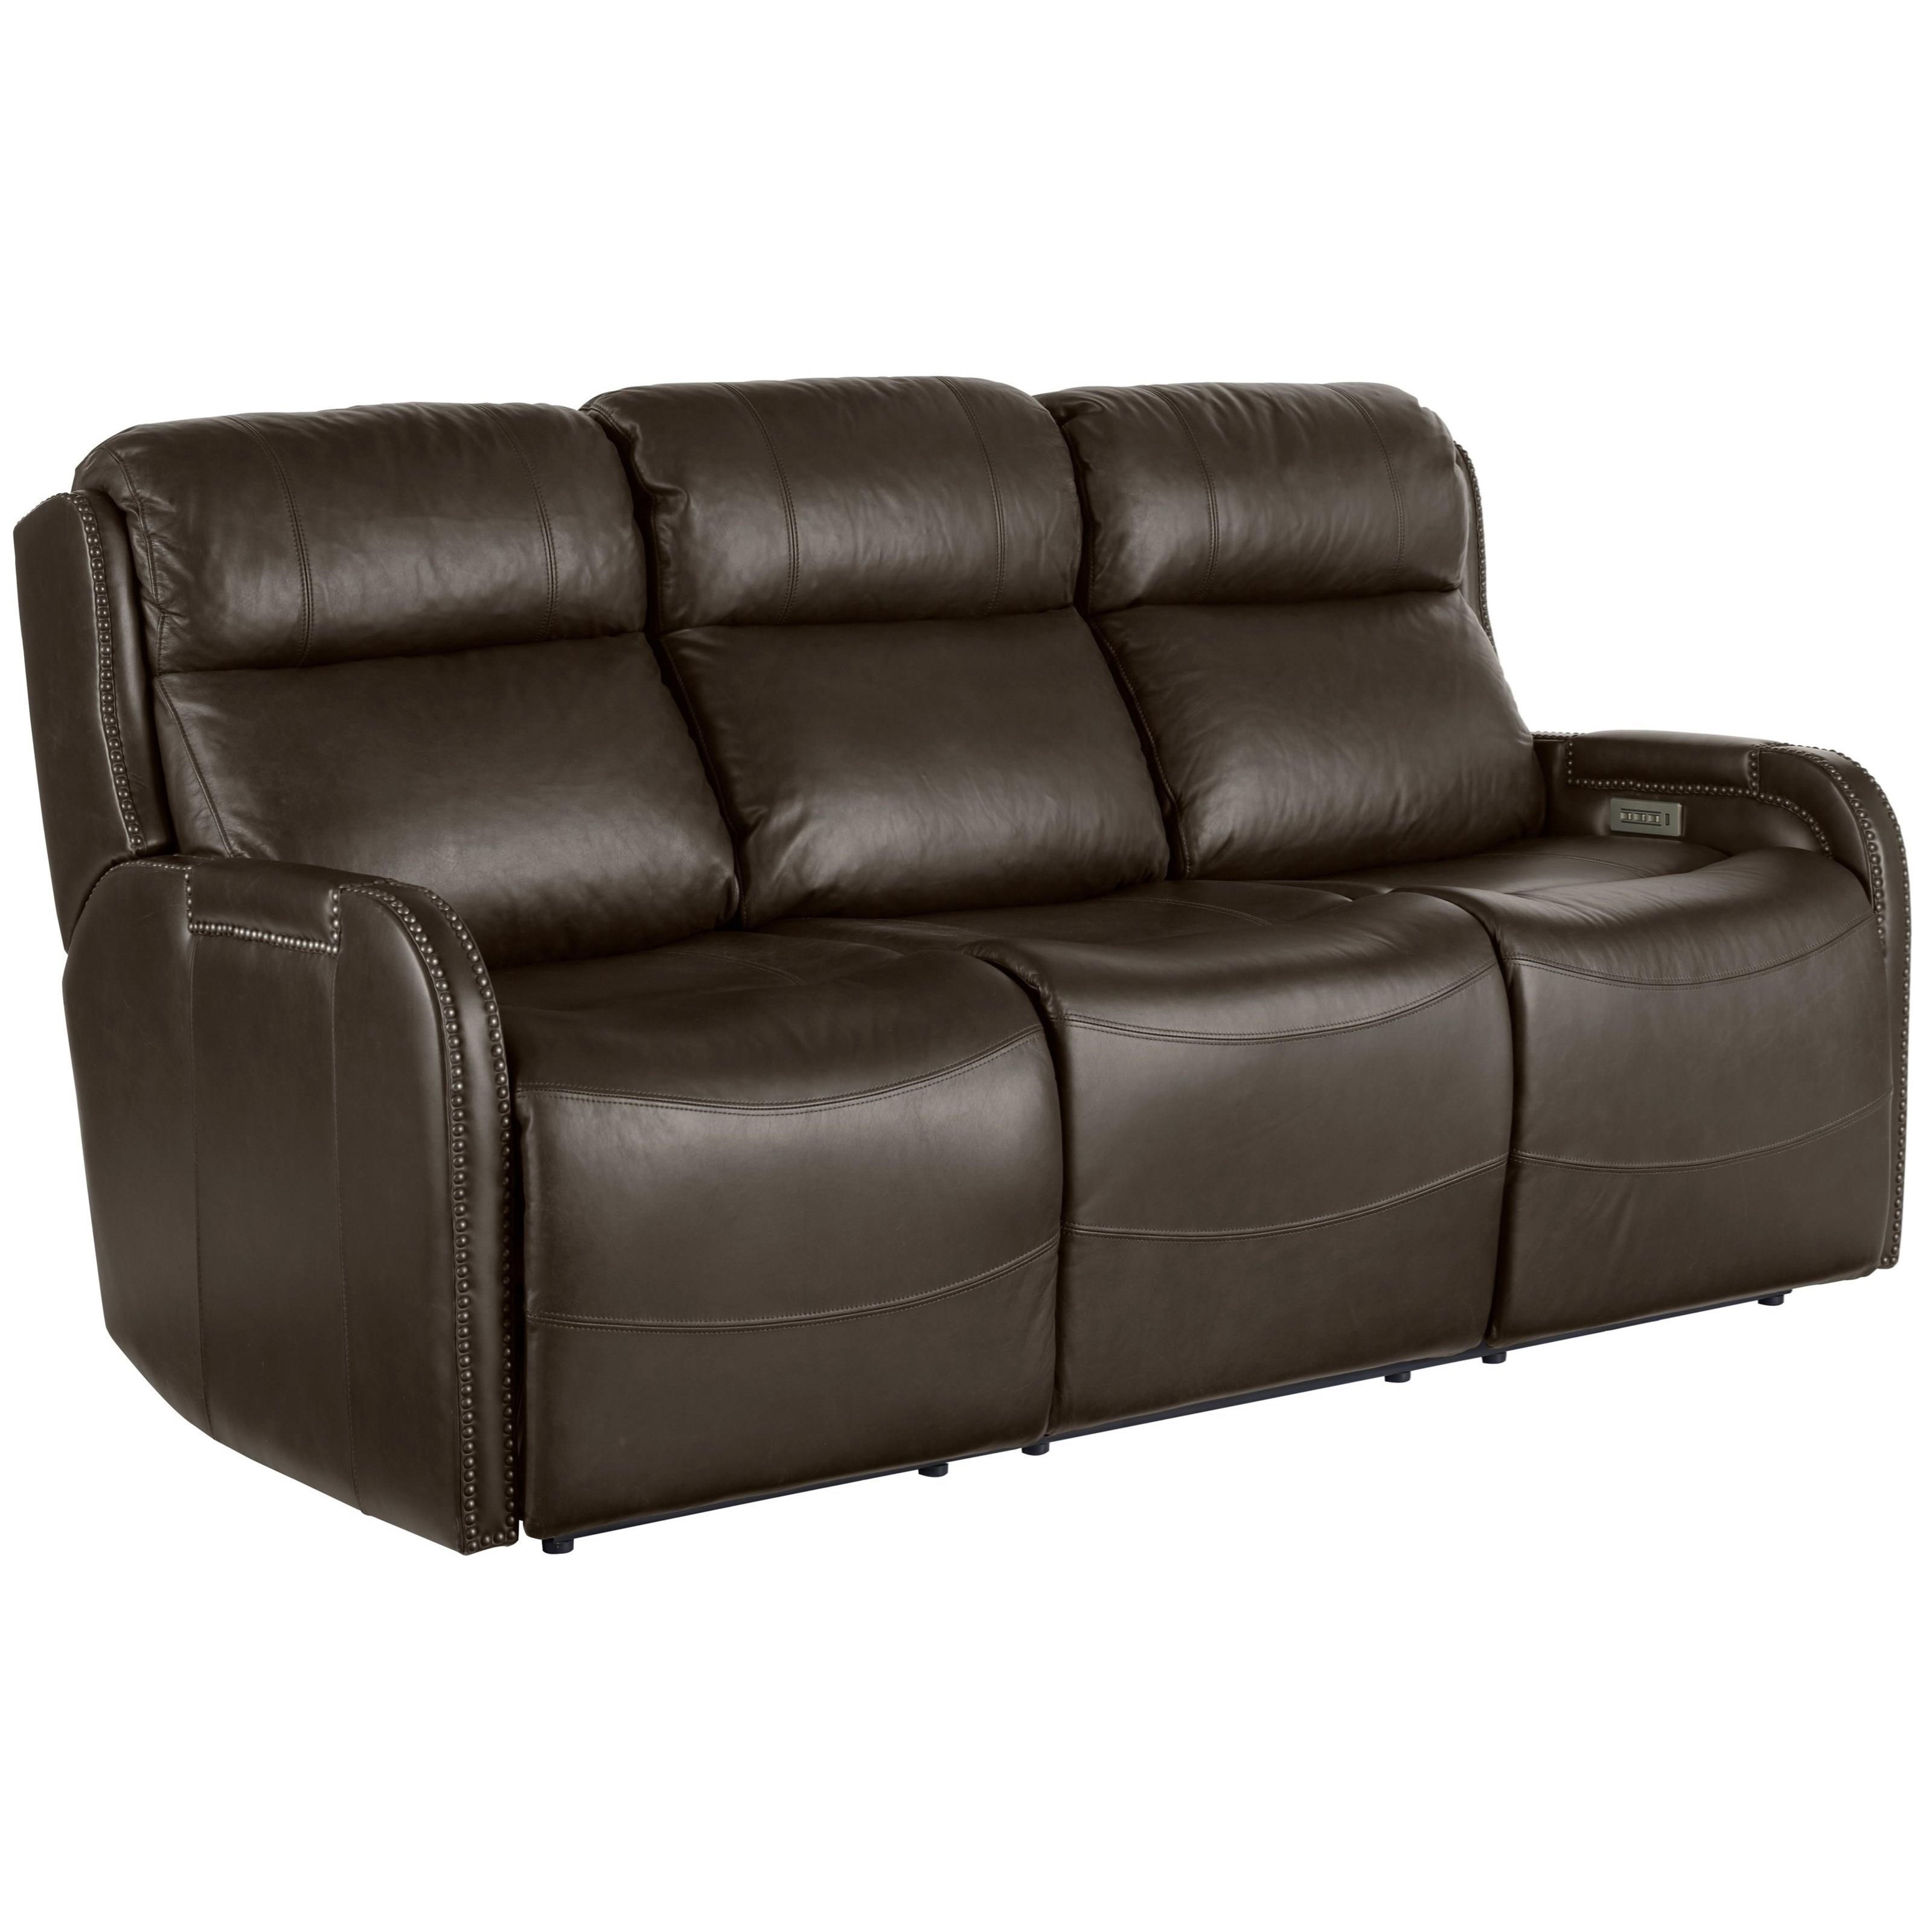 Transitional Mayfield Motion Sofa with Power Recline